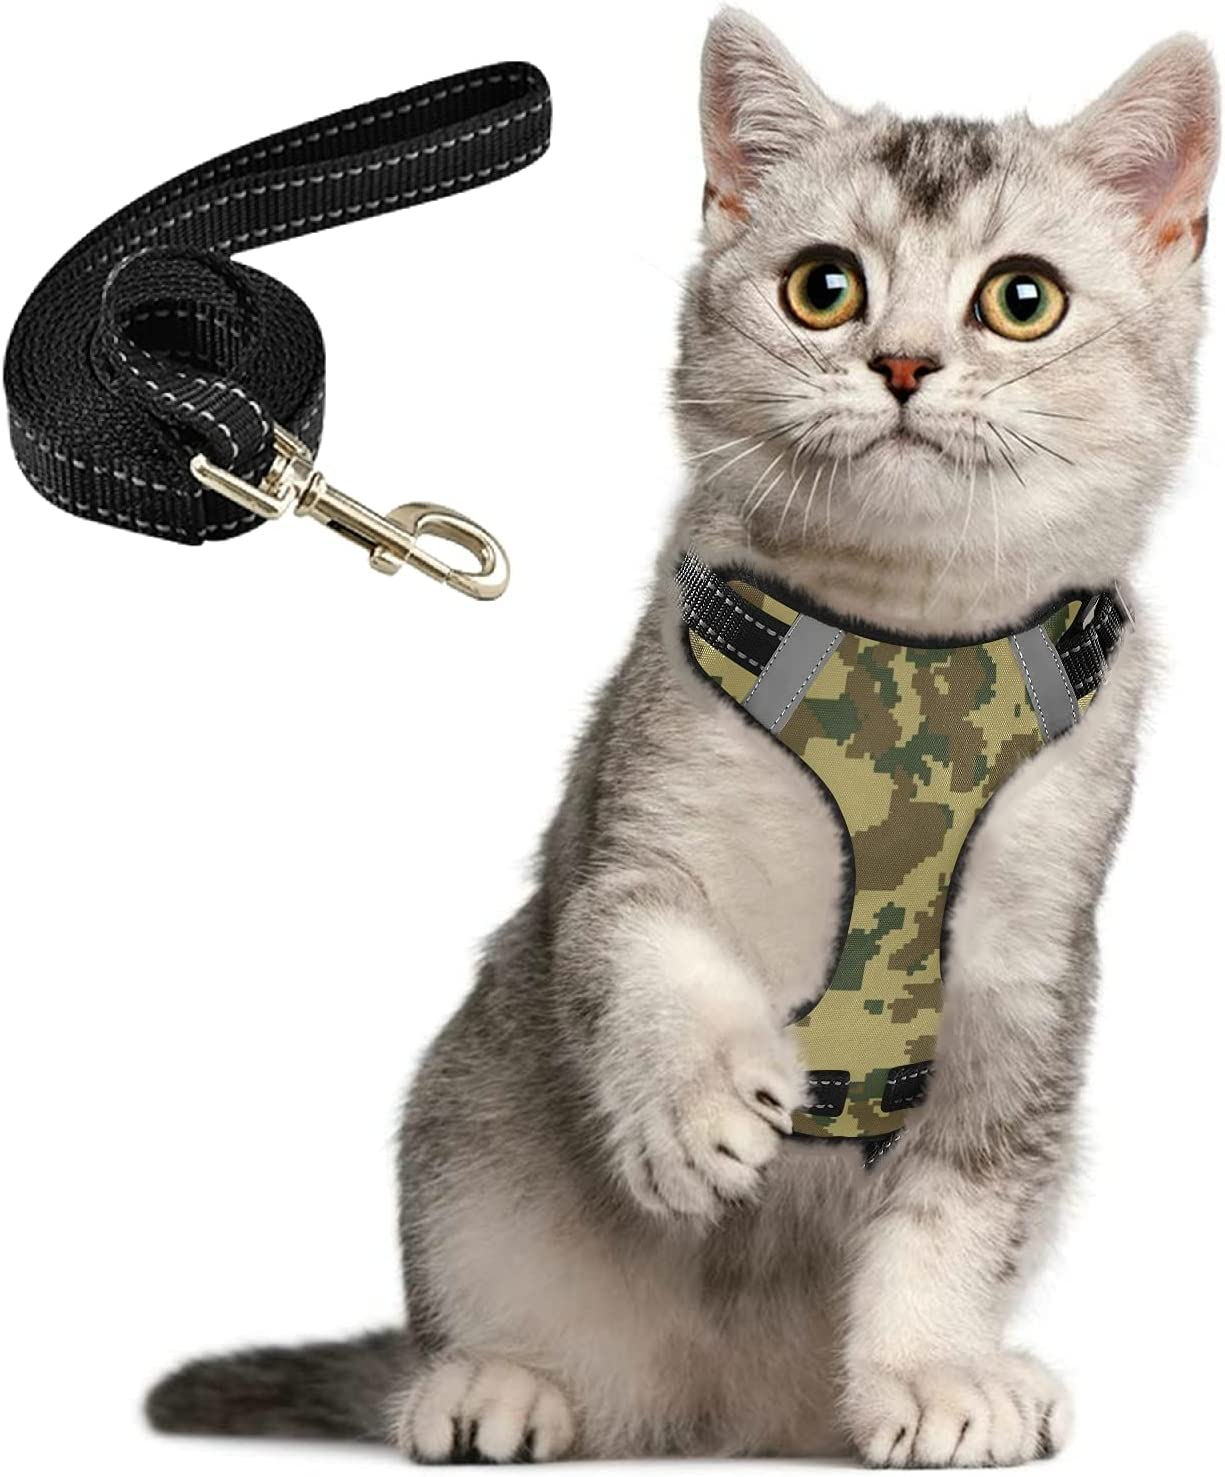 Charlotte Mall Digital Camo Cat Harness Max 77% OFF and Leash Escape Set Proof Walking for